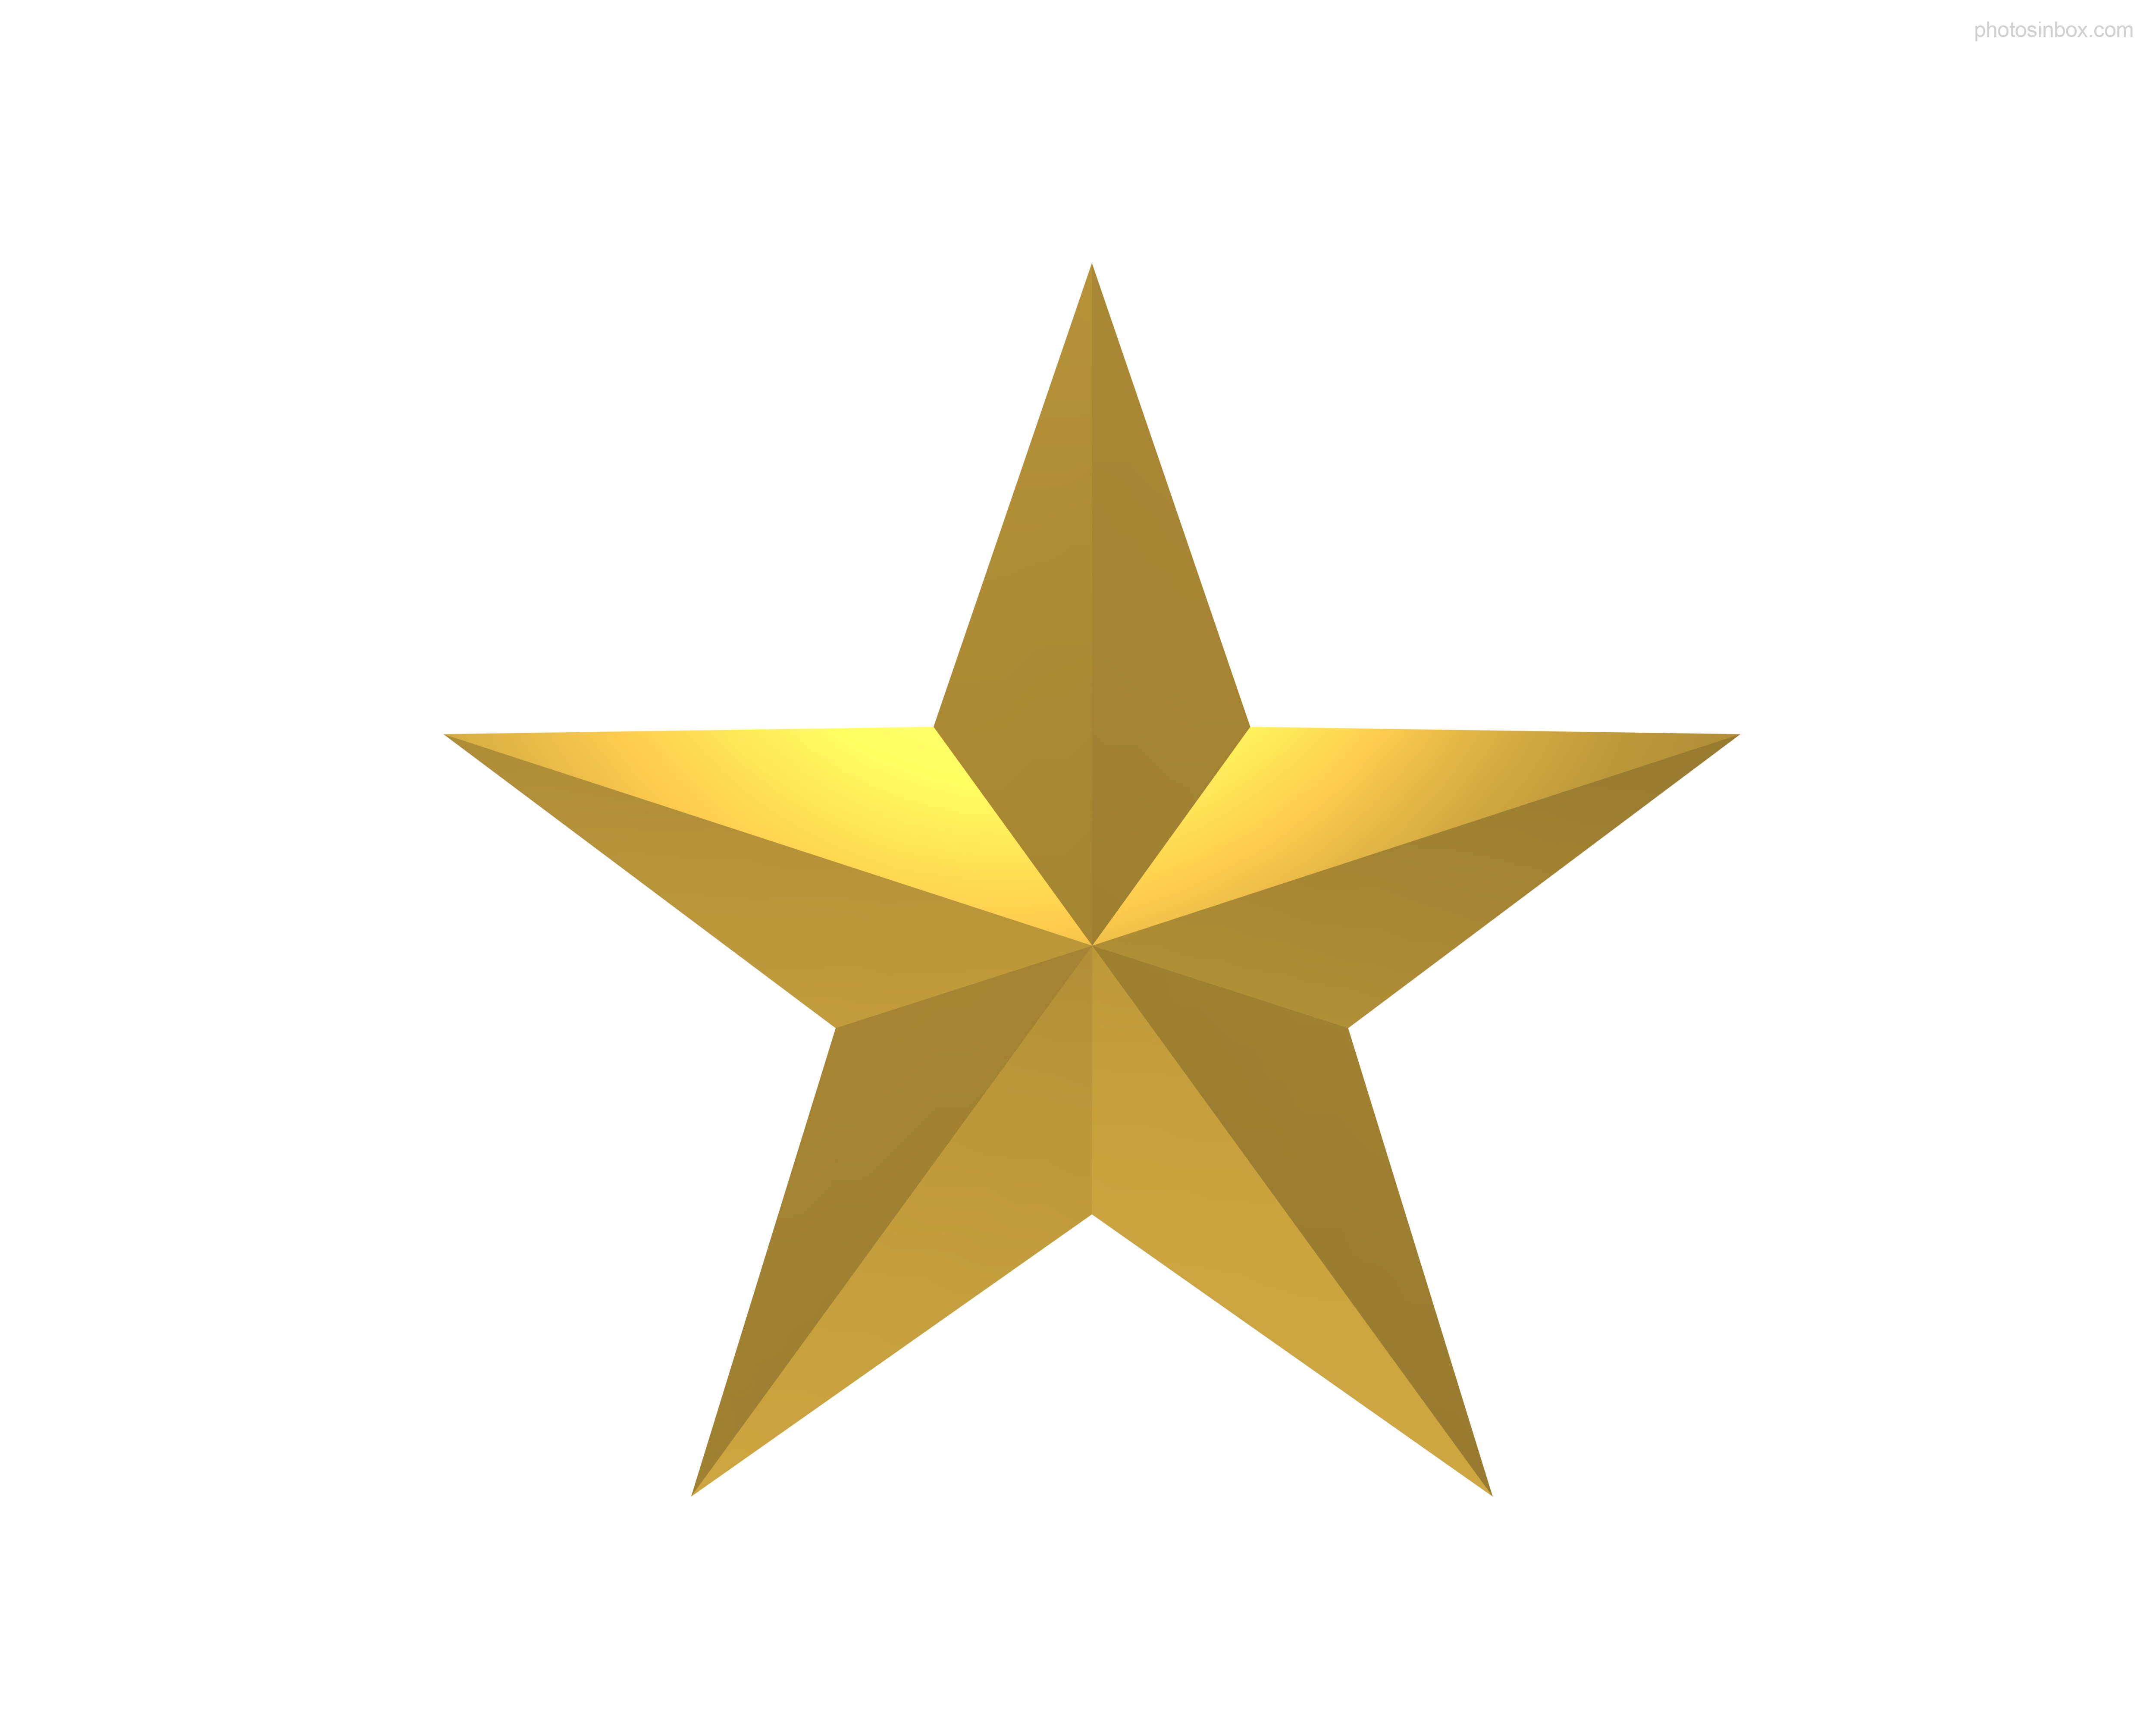 Gold star clipart no background free images 2.